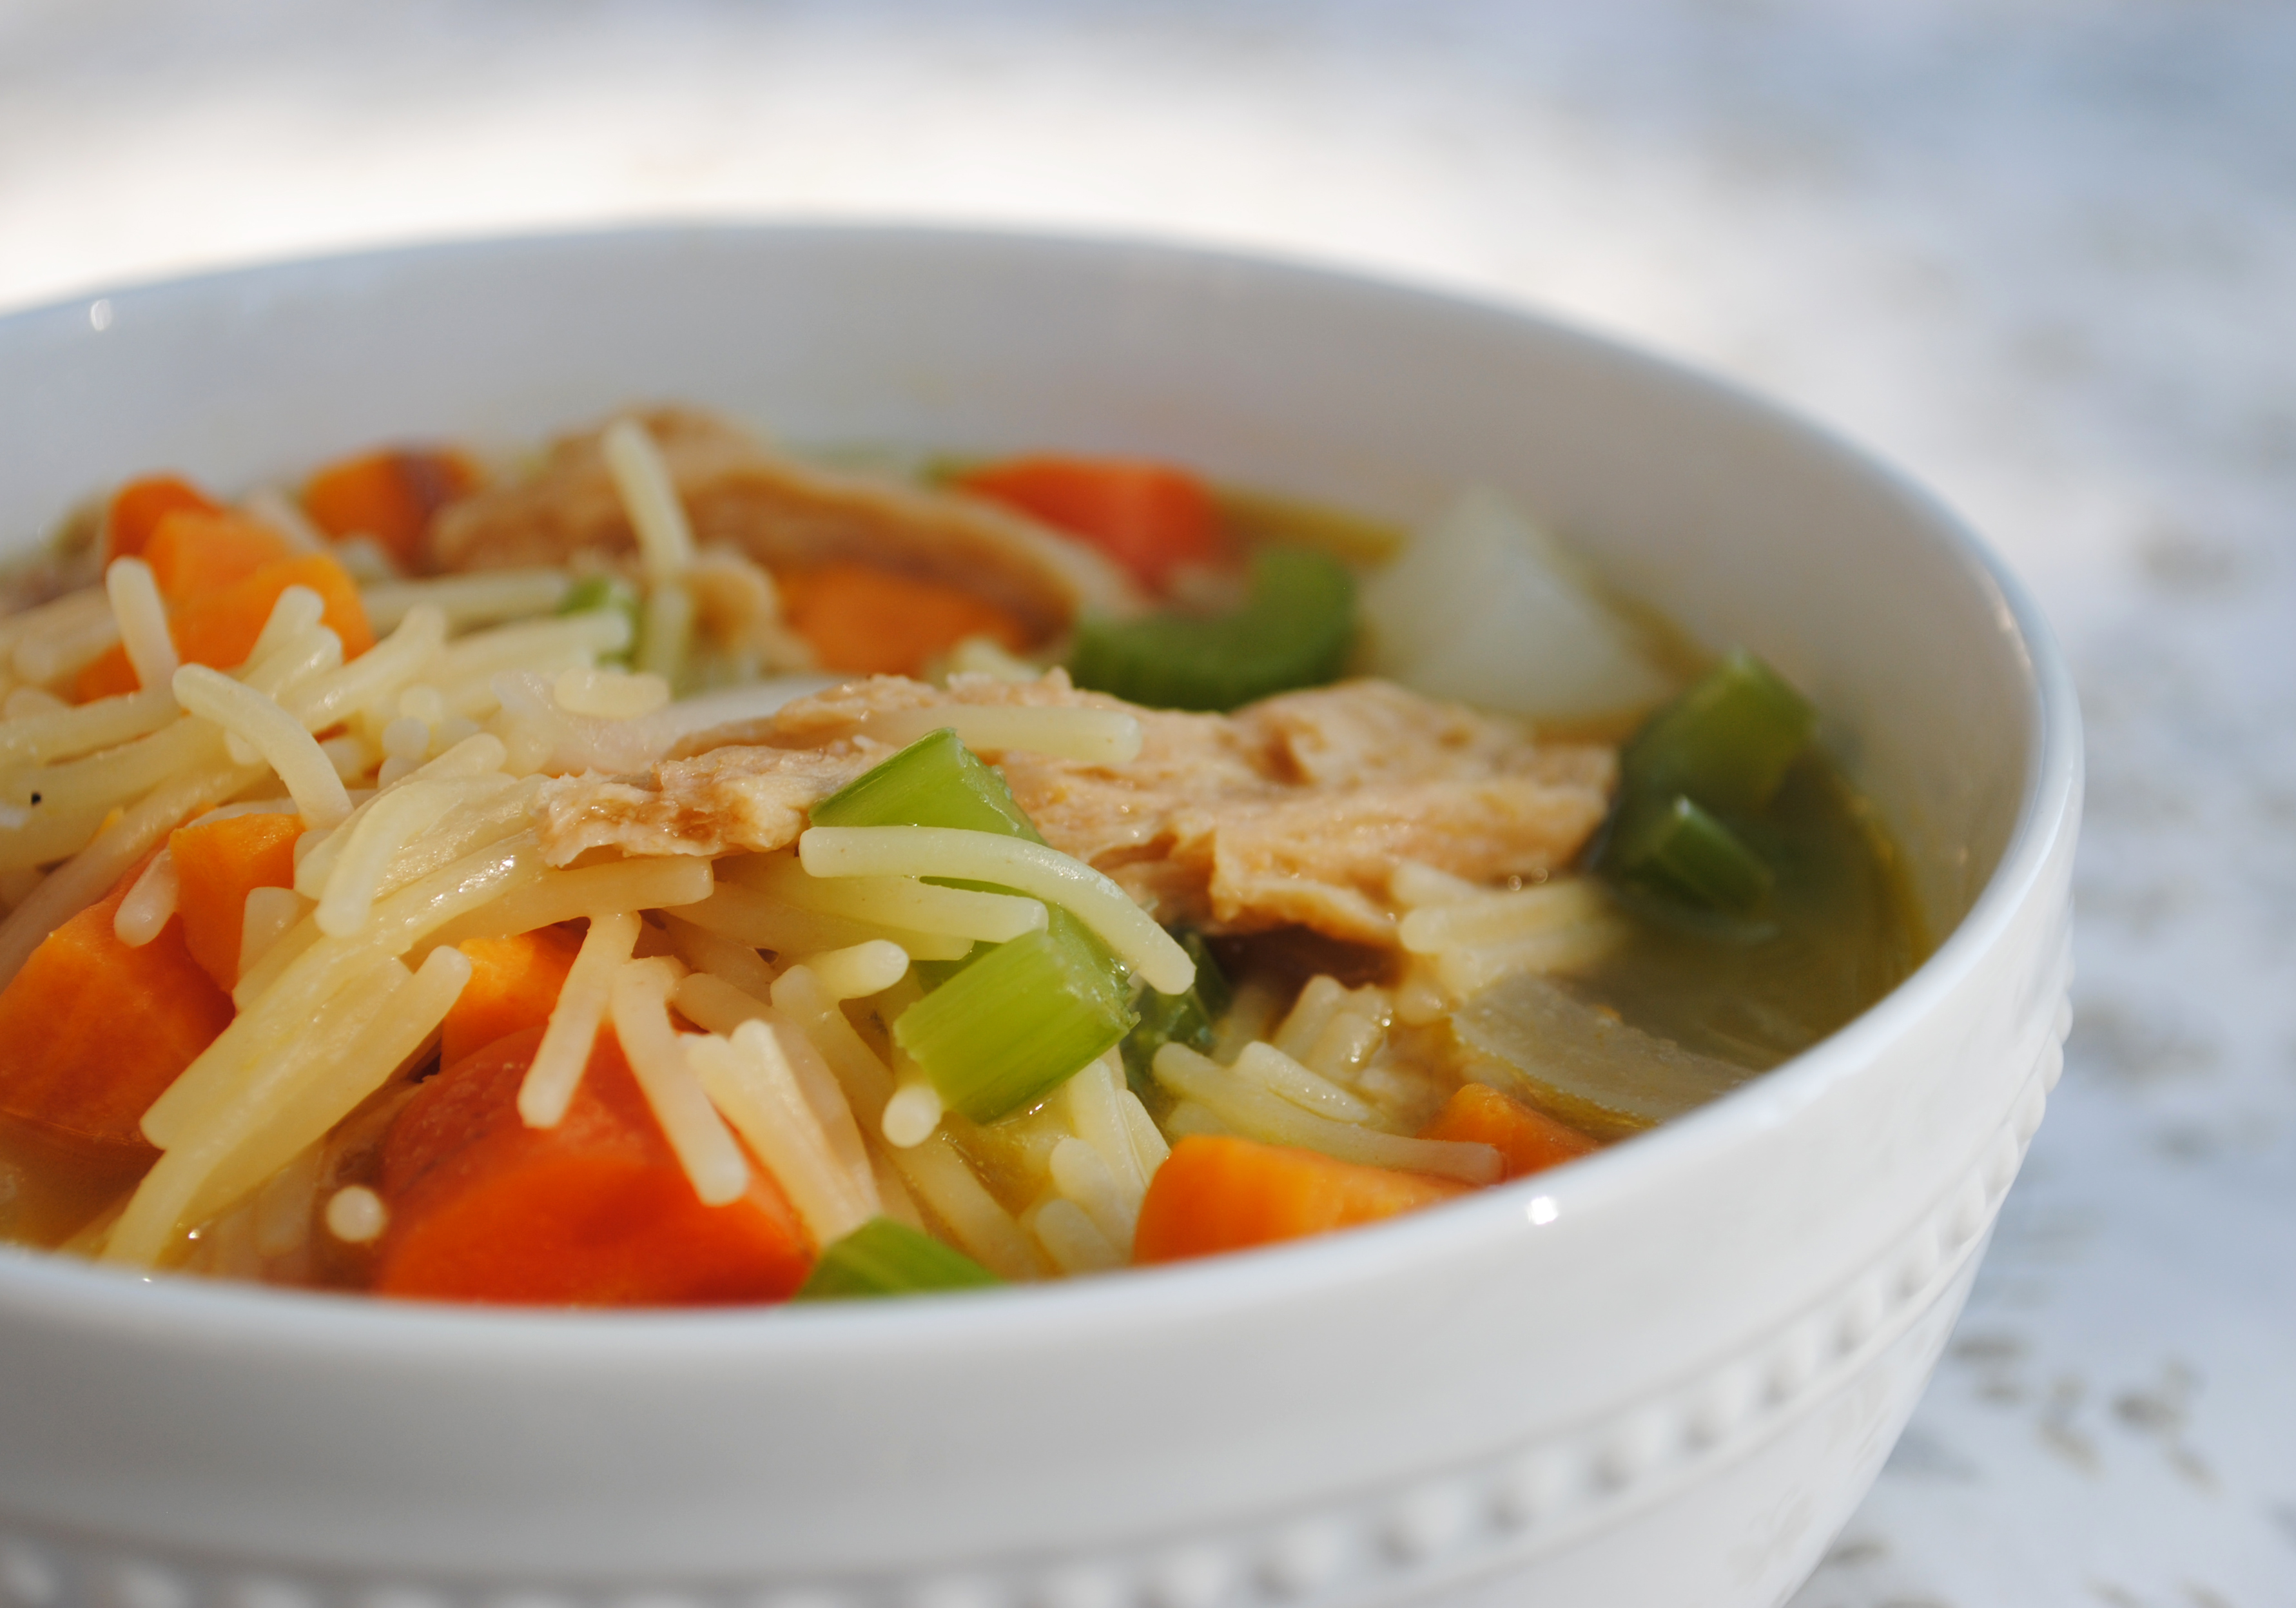 ... Chicken Noodle Soup Recipe Soup Recipes in Urdu with Chicken with